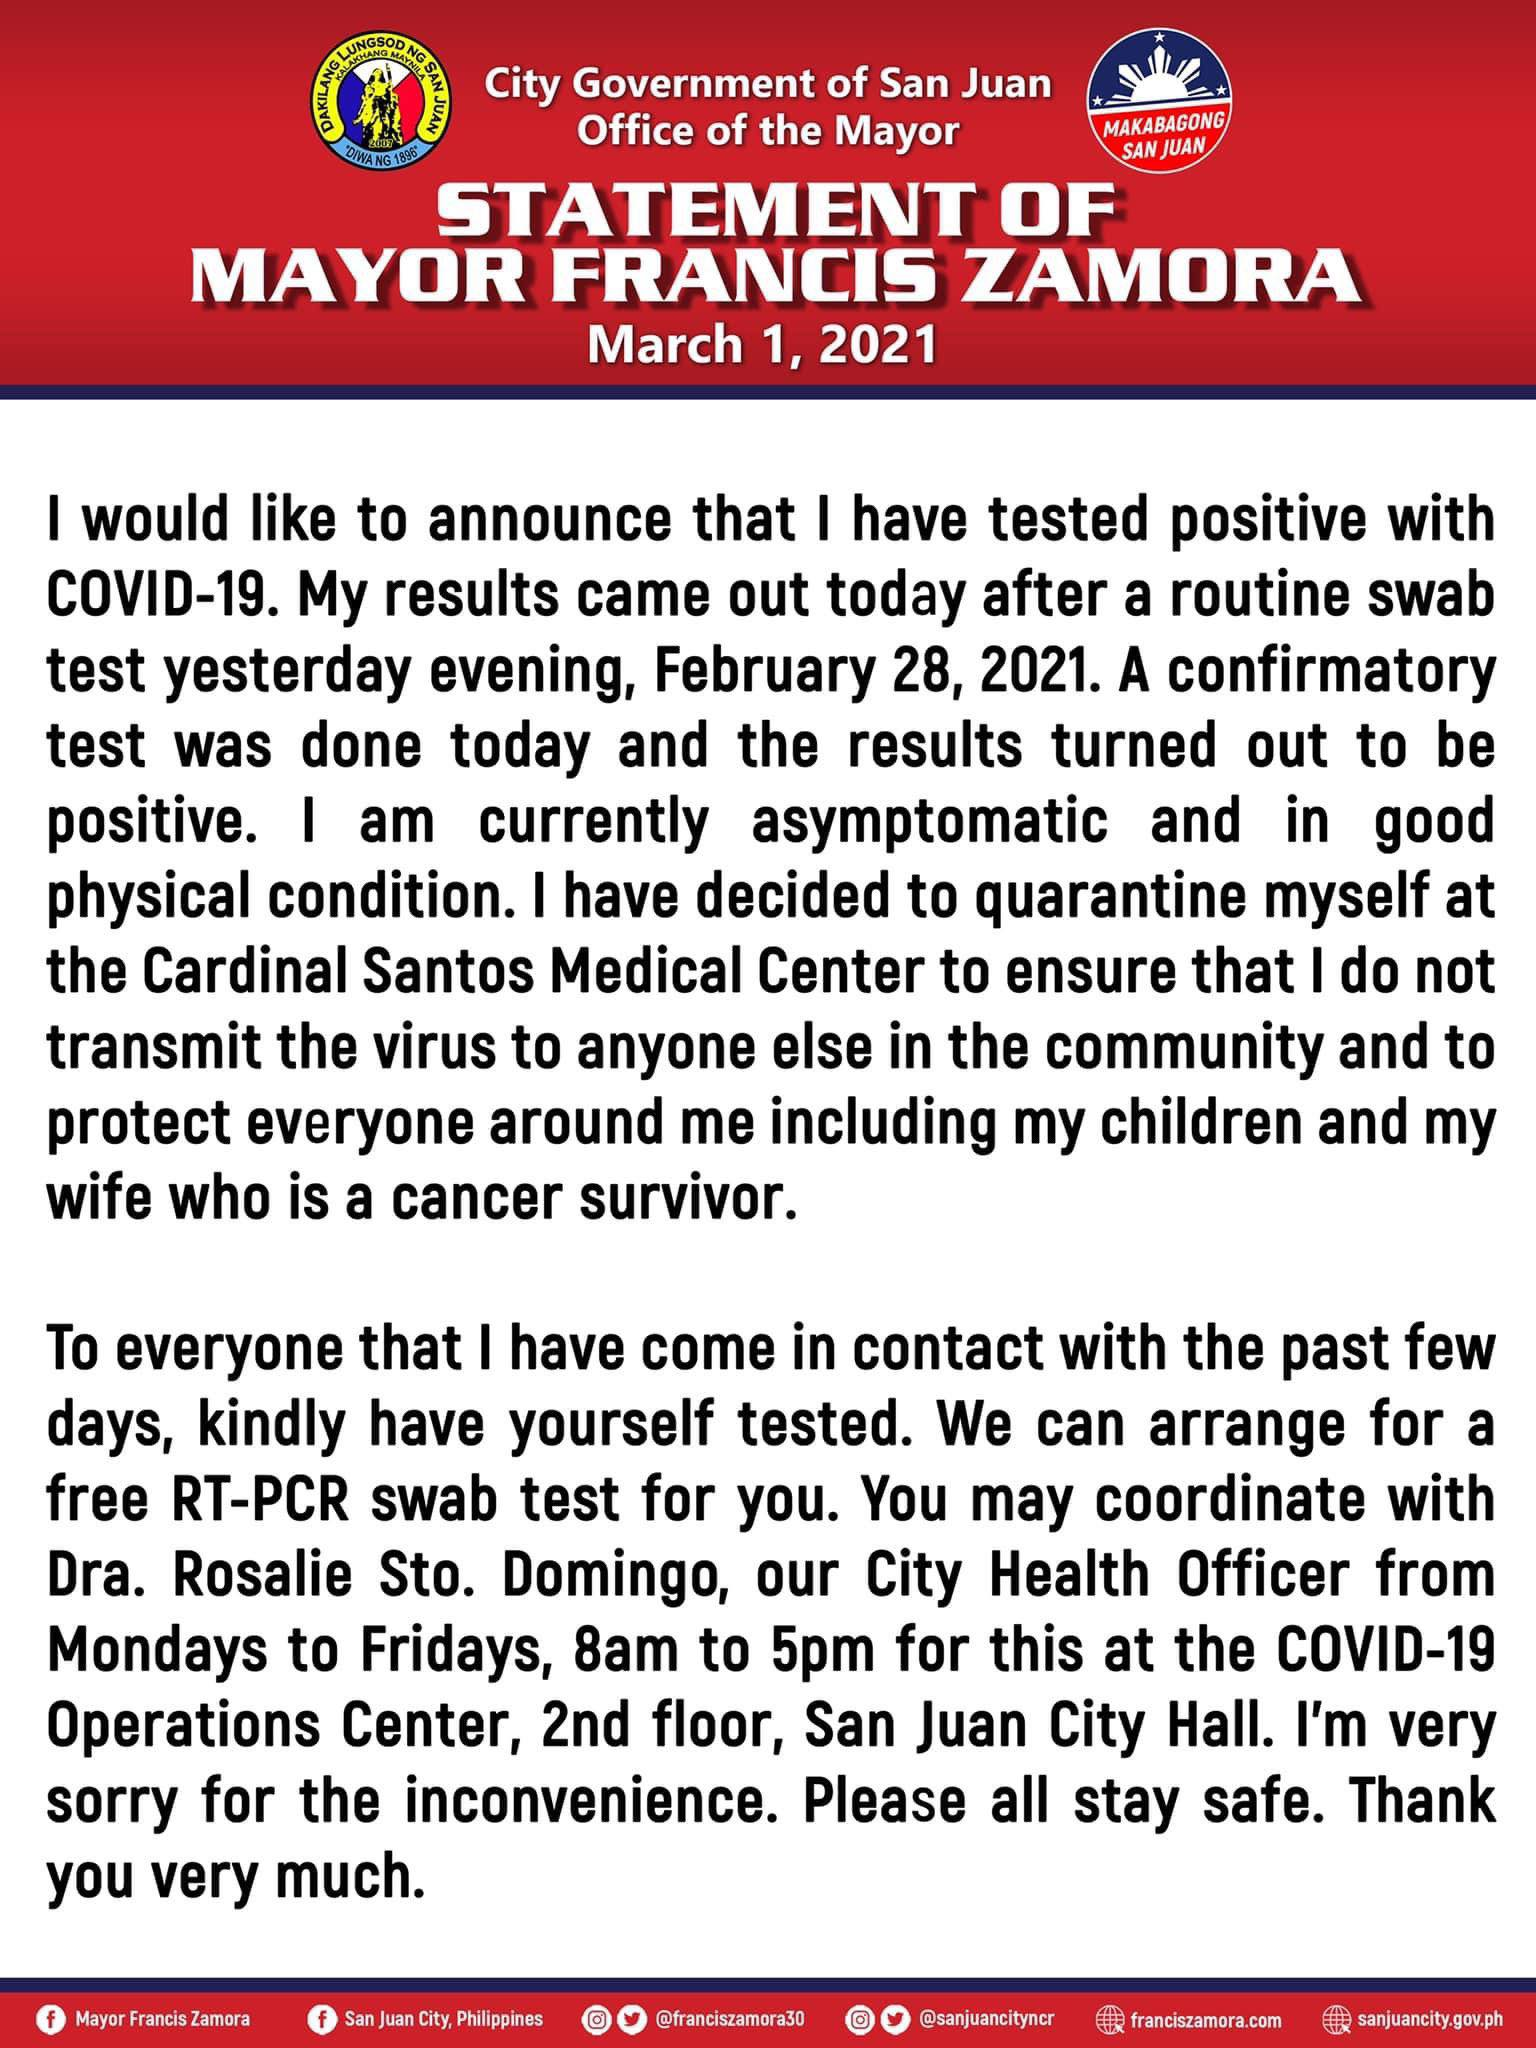 San Juan Mayor Francis Zamora official statement on COVID-19 condition